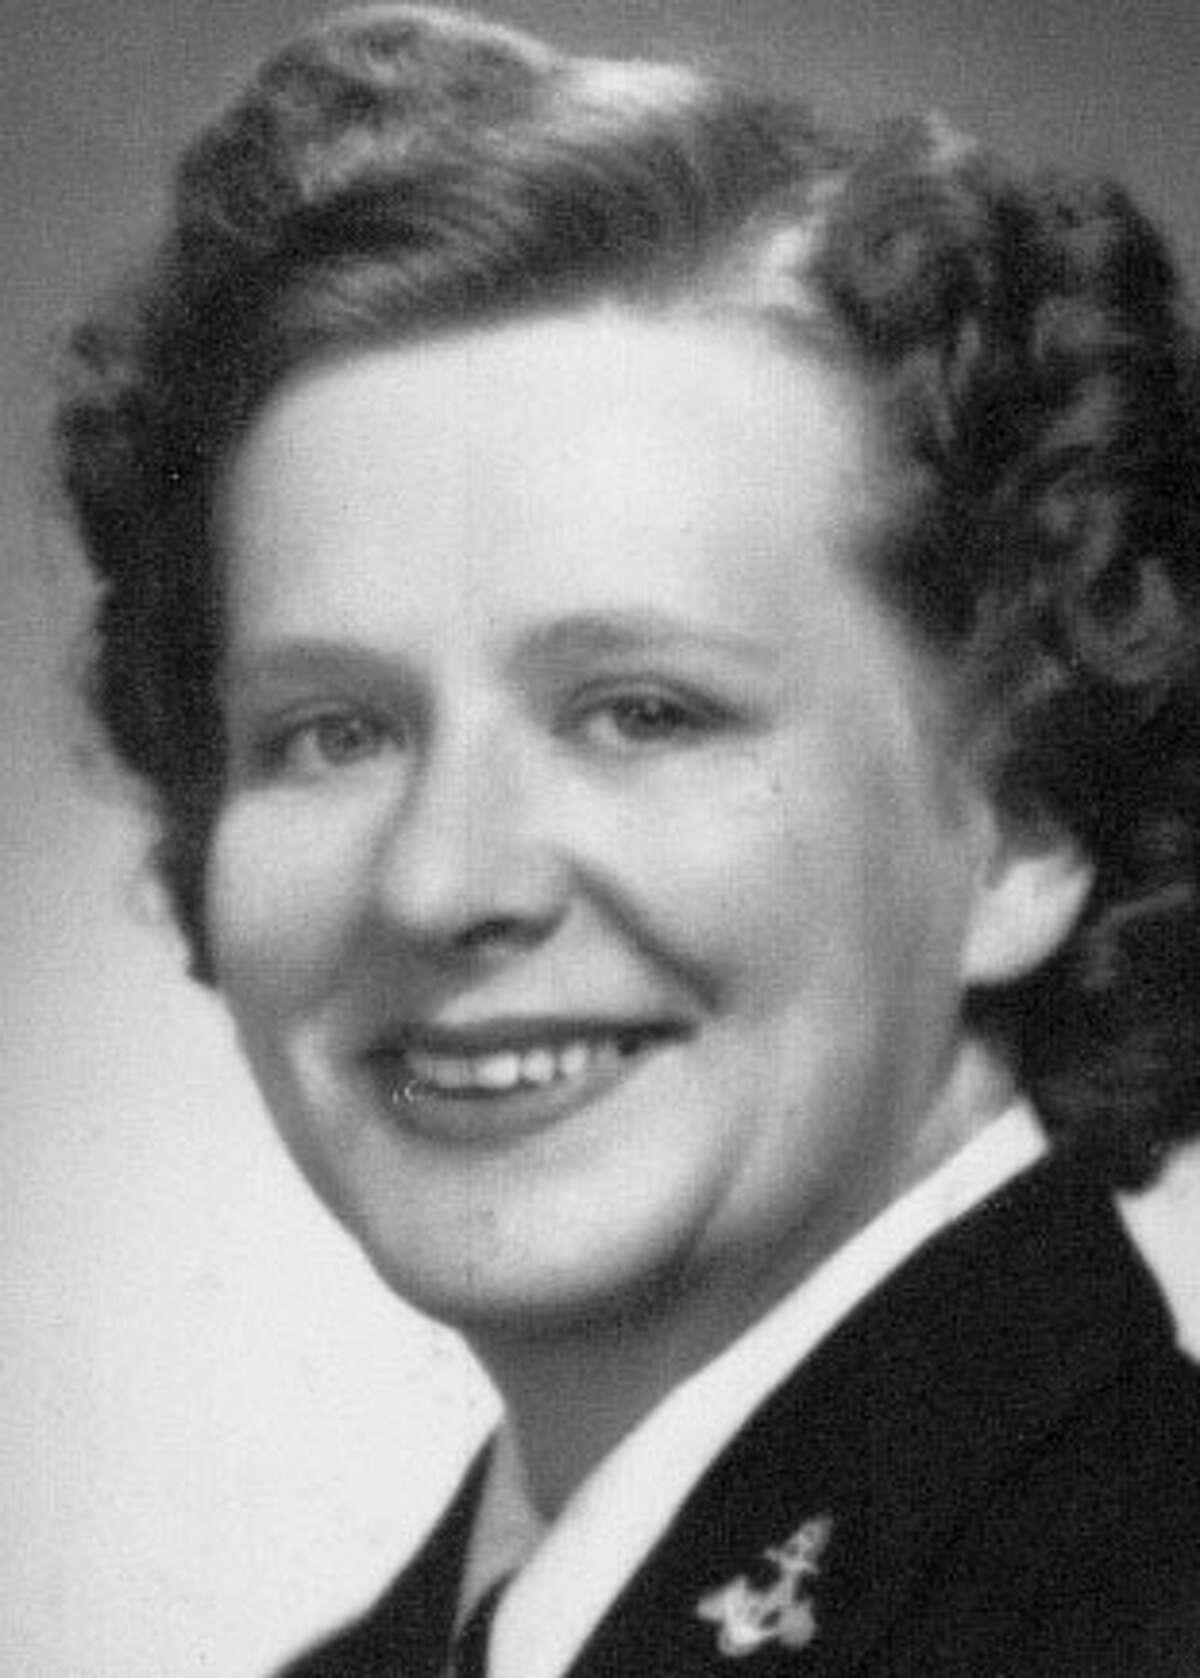 Alice Douglas Jennings, 95, of Bridgeport, died March 16, 2013, at Masonicare of Newtown. She was the wife of the late Earl Jennings. Alice was born march 28, 1917, in Cumberland, R.I., daughter of the late Albert and Nellie (Longton) Douglas of New Milford. Her early years were spent in New Milford, graduating with the New Milford High School, Class of 1935.